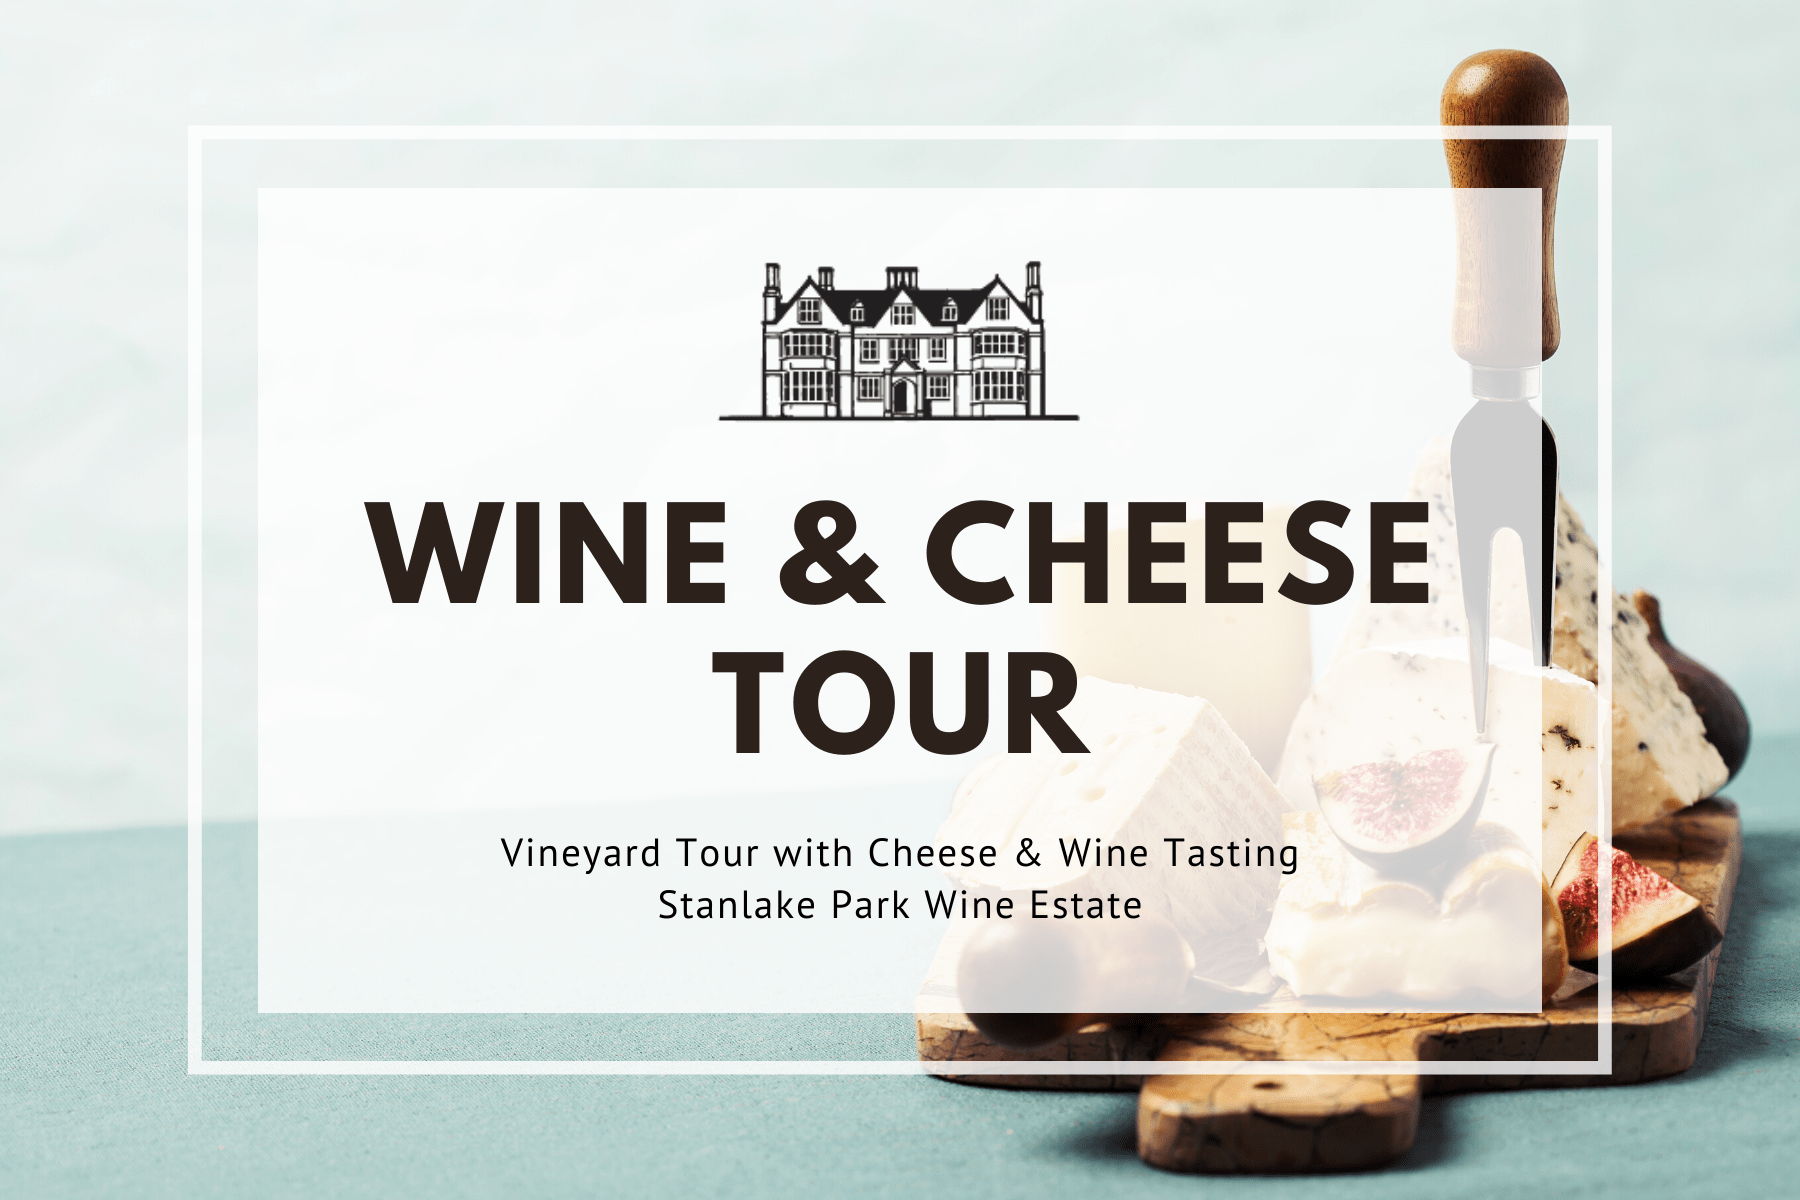 Sunday 13th June 2021 at 11 am - Wine & Cheese Tour